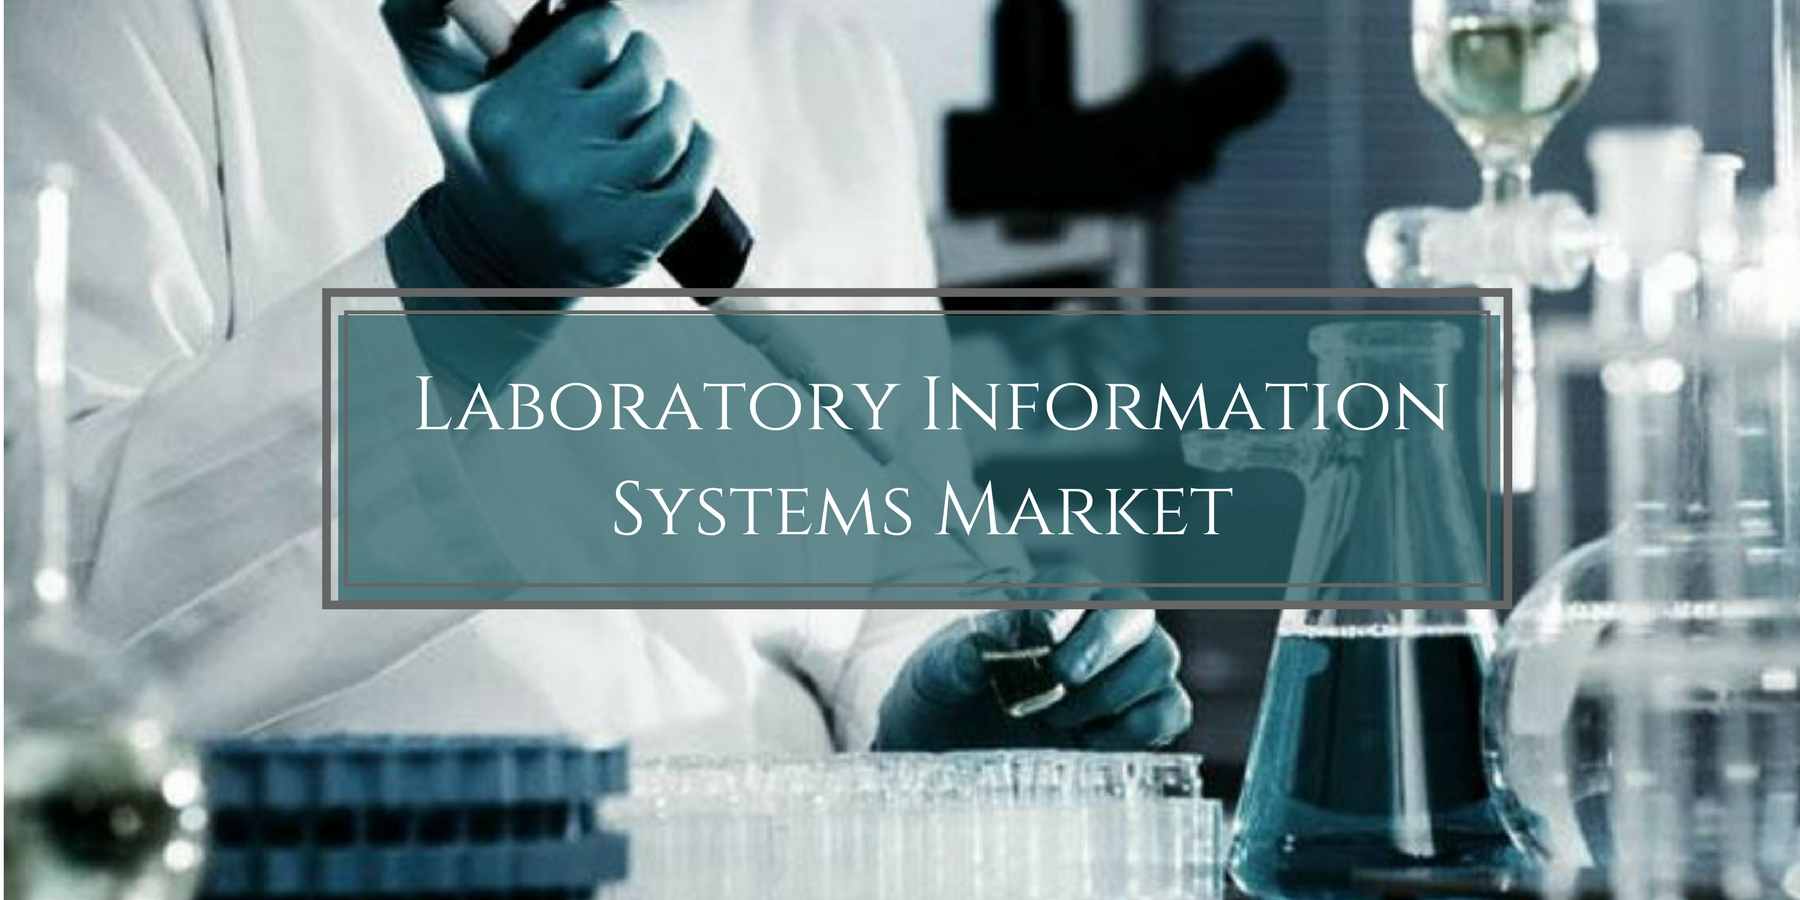 Laboratory Information Systems (LIS) Industry Research, Size, Share, Analysis, Demand, Growth, Segmentation, Manufacturers, Forecasts to 2026